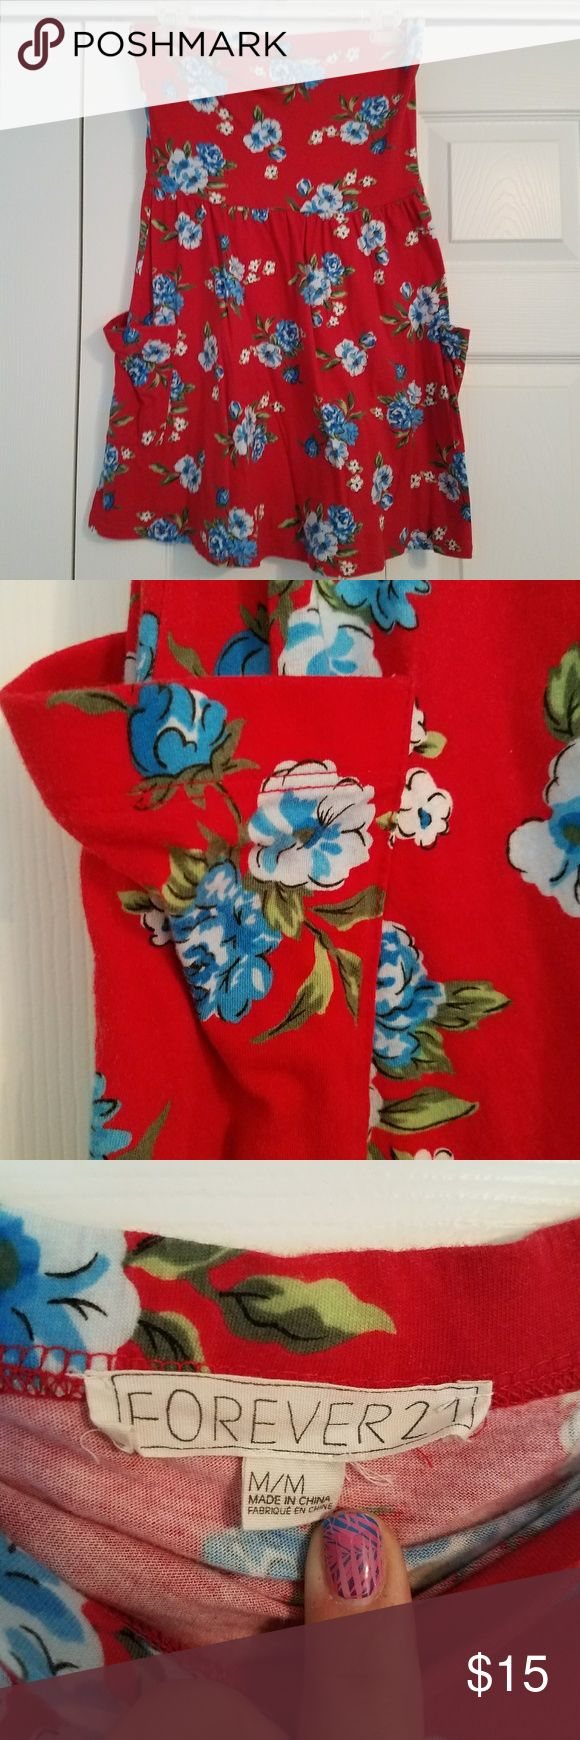 Forever 21 strapless dress This dress is from forever 21. It is strapless and has pockets! It red with a blue and green floral pattern. Can be worn as a dress or as a beach coverup. Forever 21 Dresses Strapless